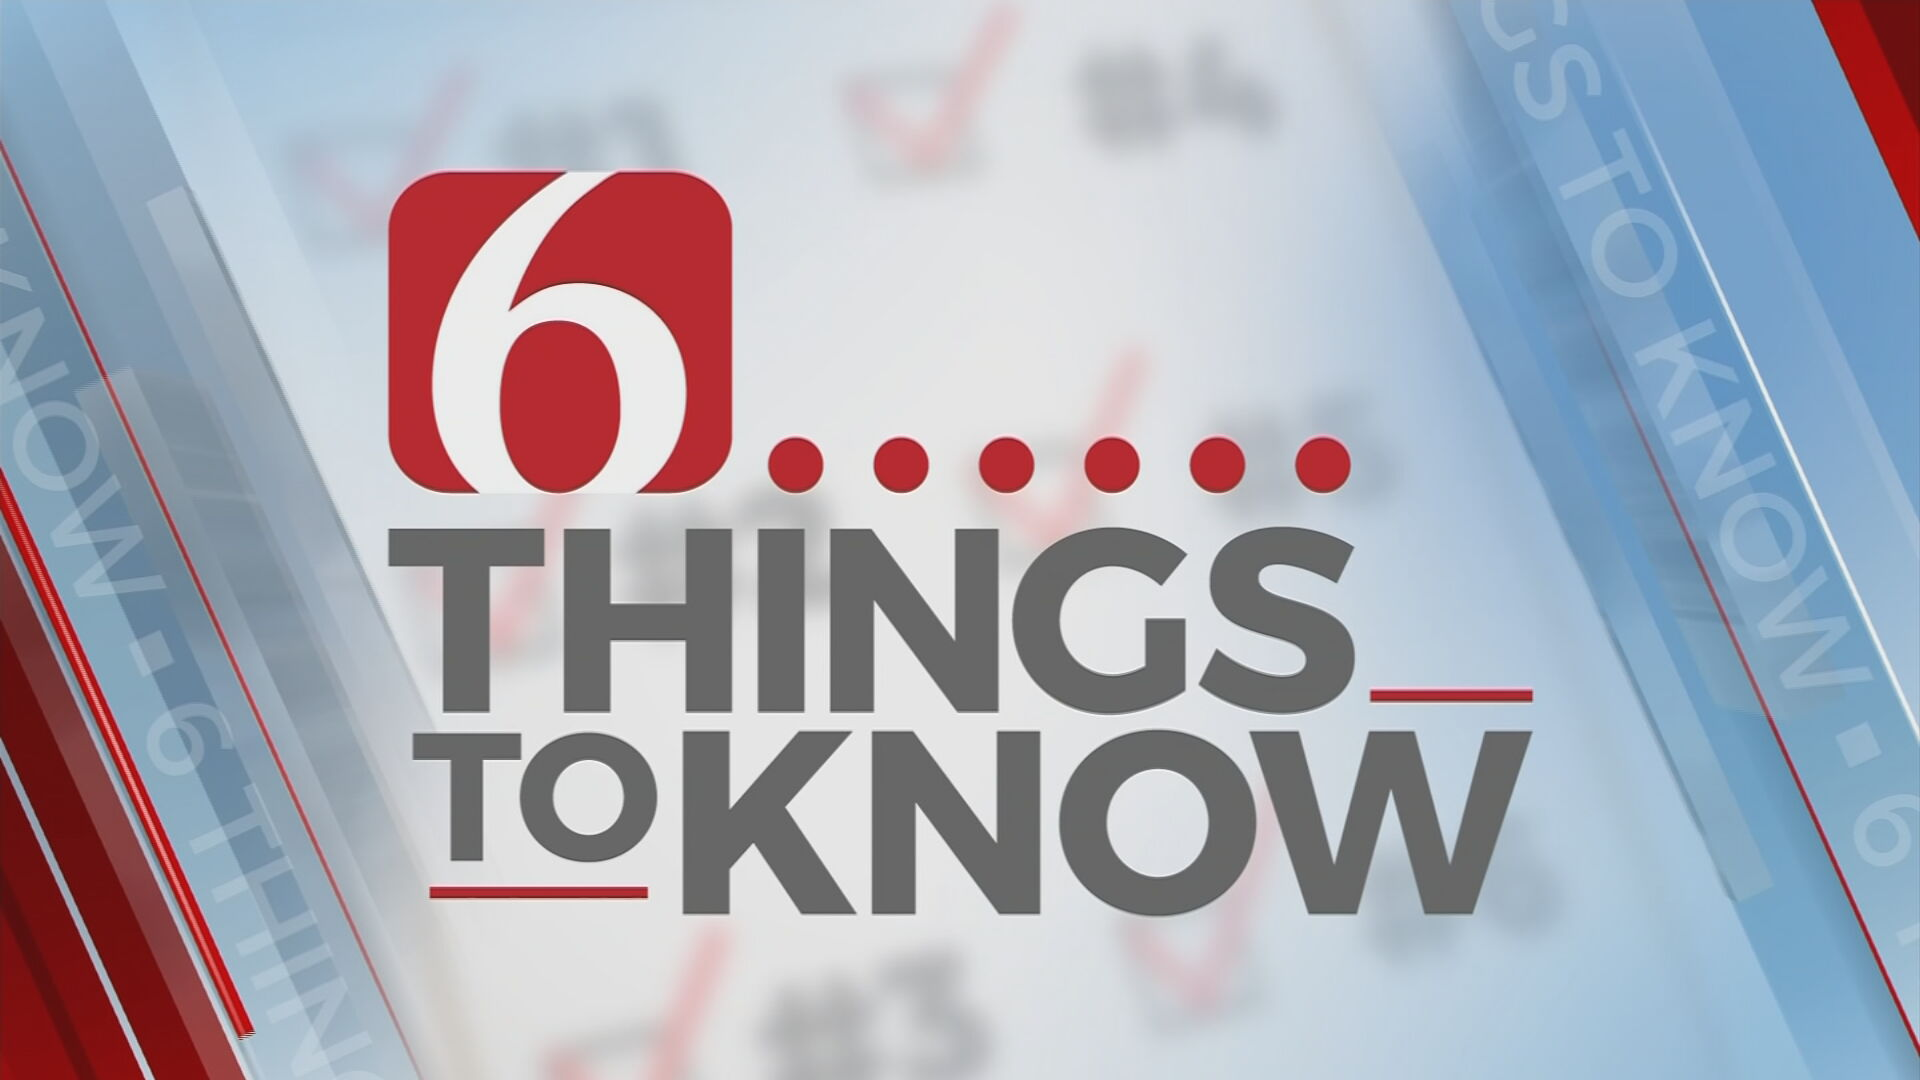 6 Things To Know (Jan 15): TPS Update & Answers On Vaccine Portal